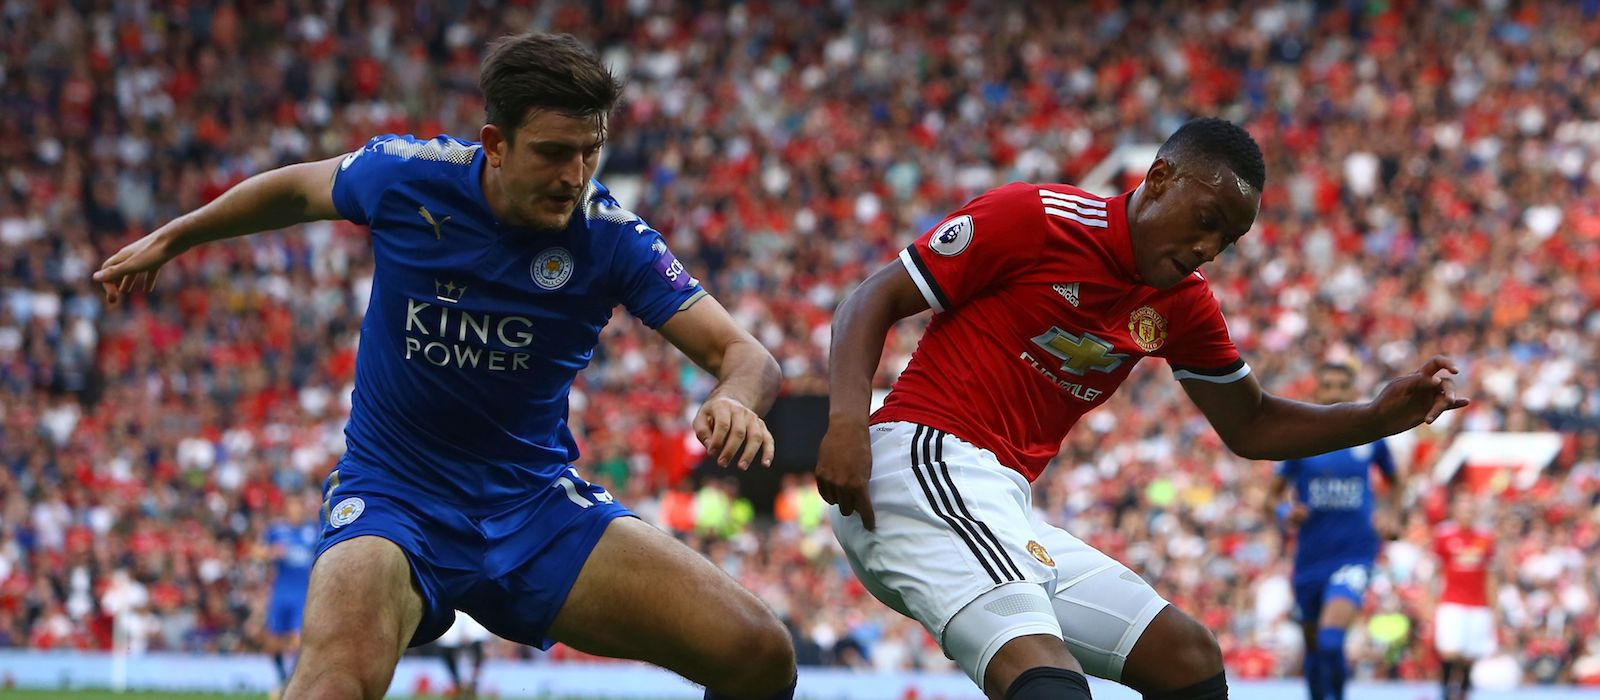 Manchester United fans excited by reports of club agreeing £80m deal for Harry Maguire